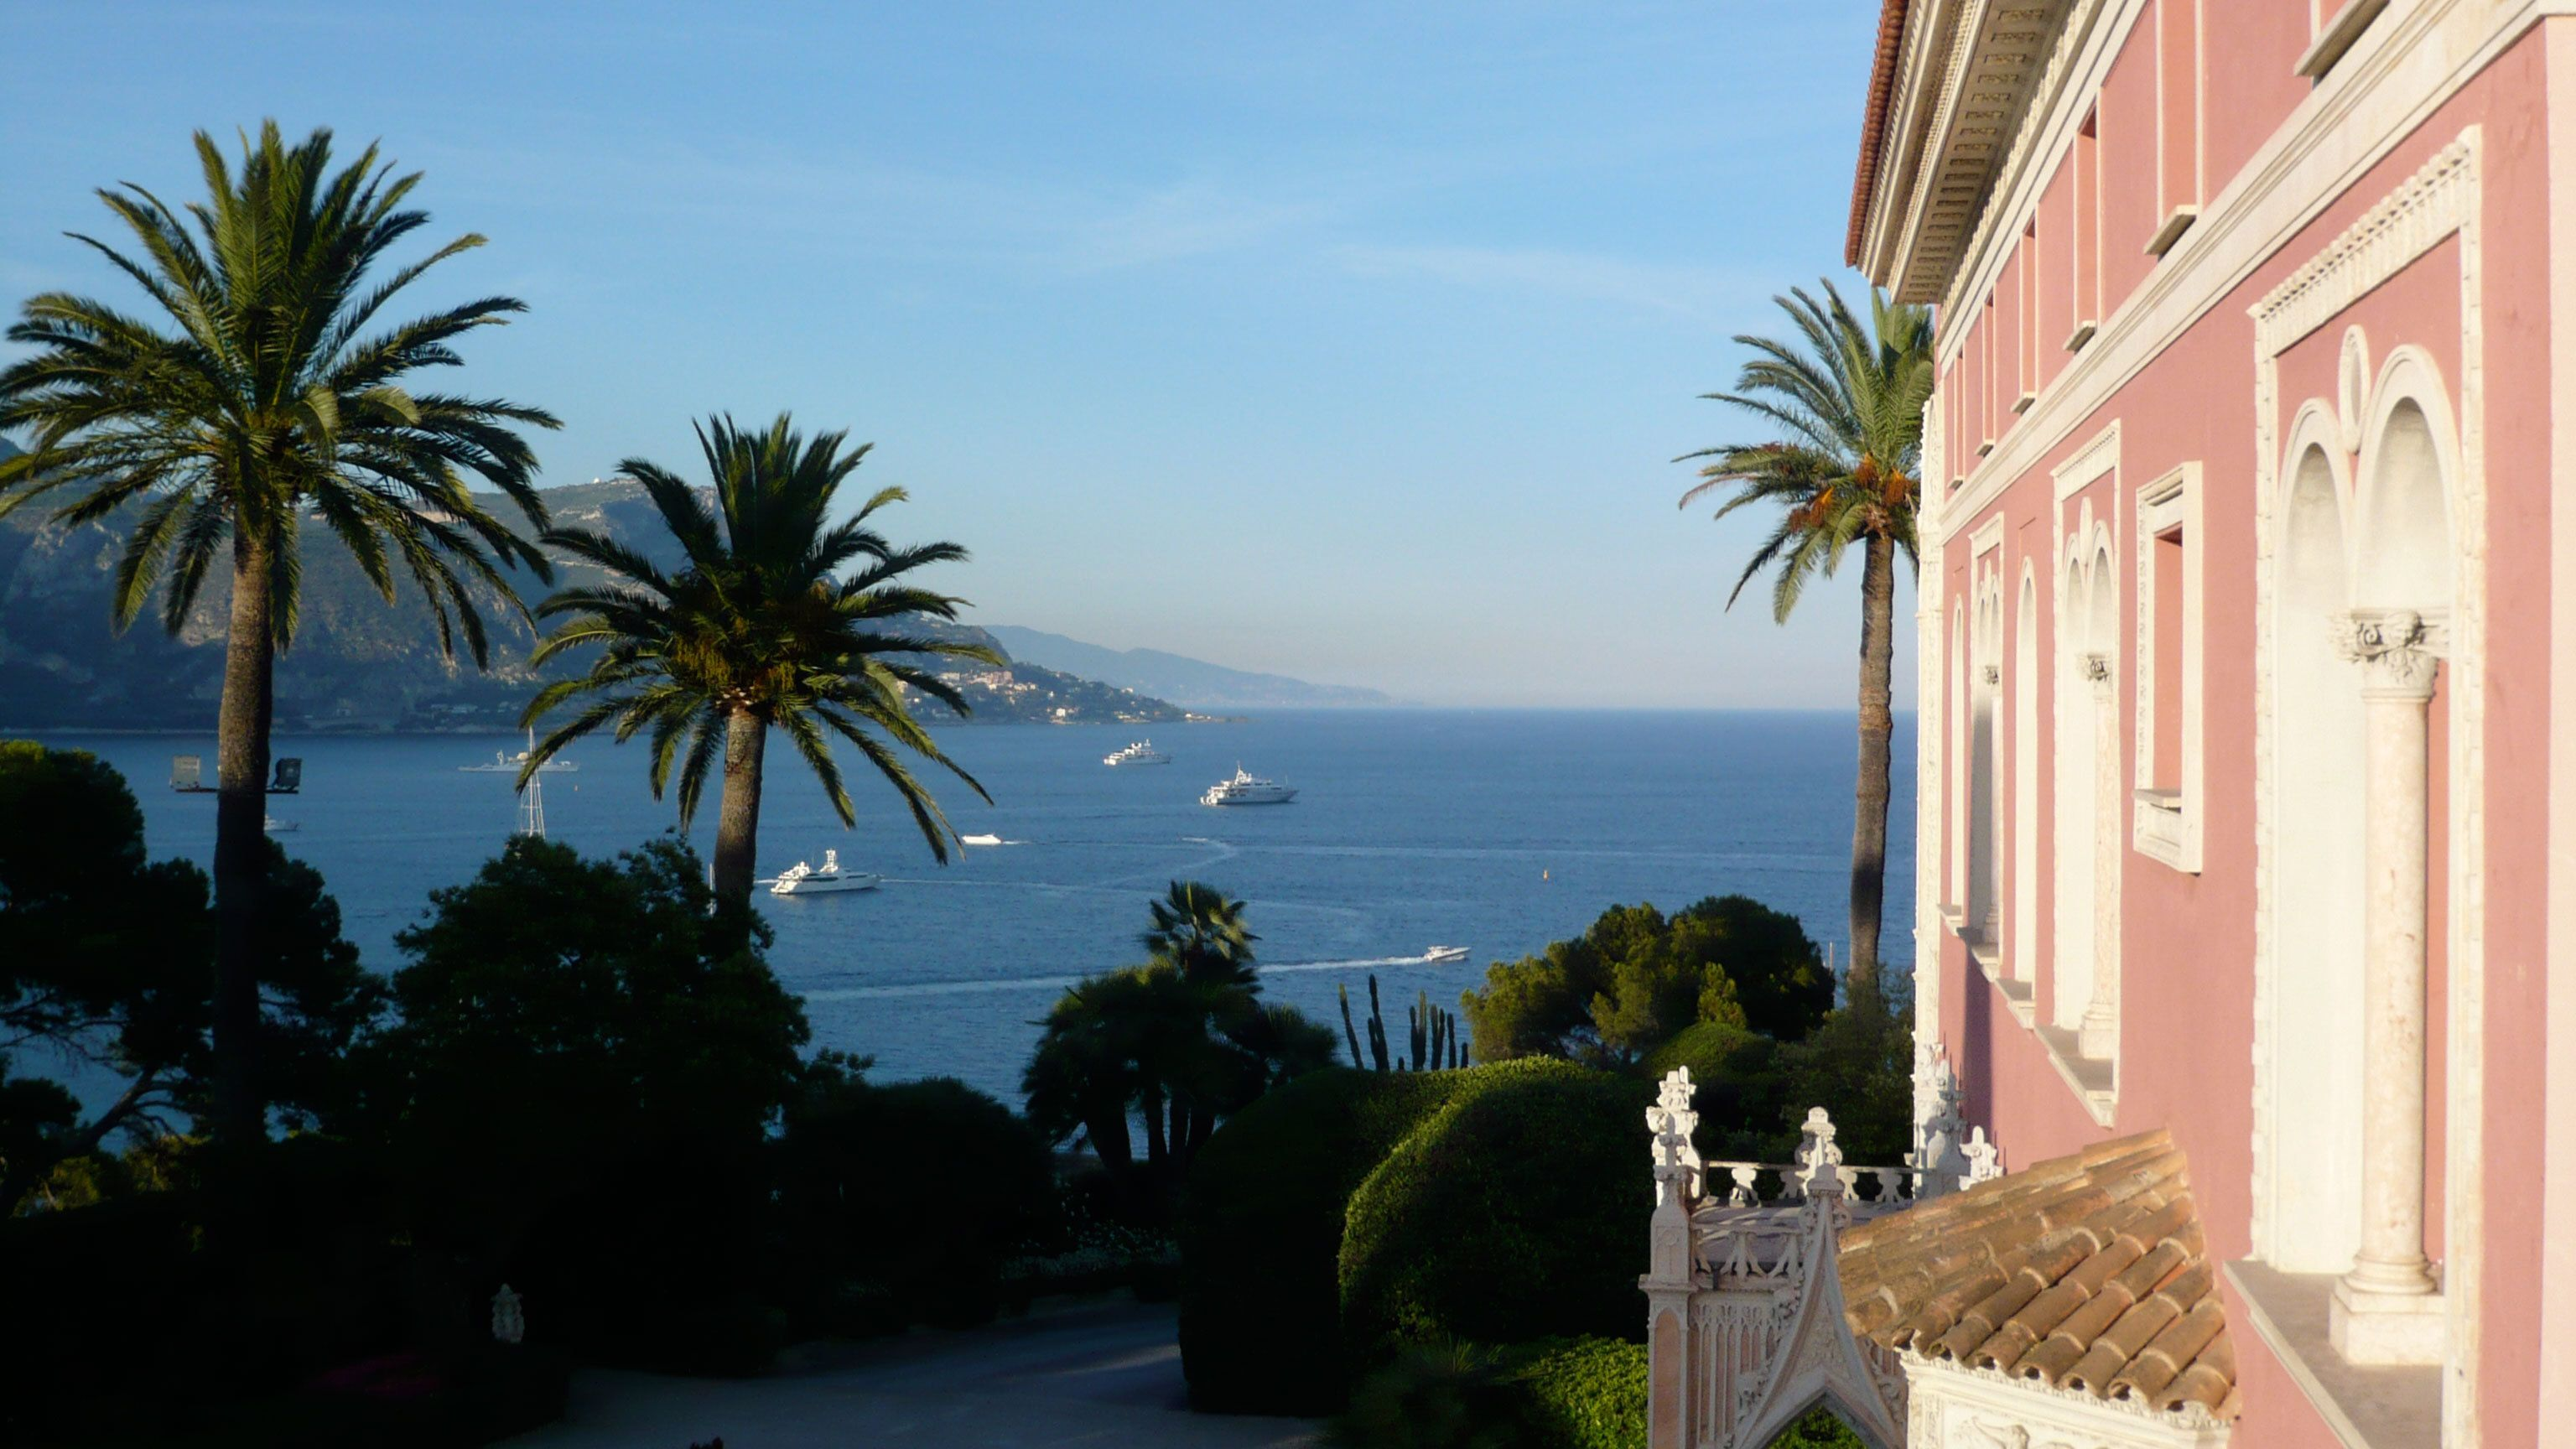 Watching boats in the distance in Cannes